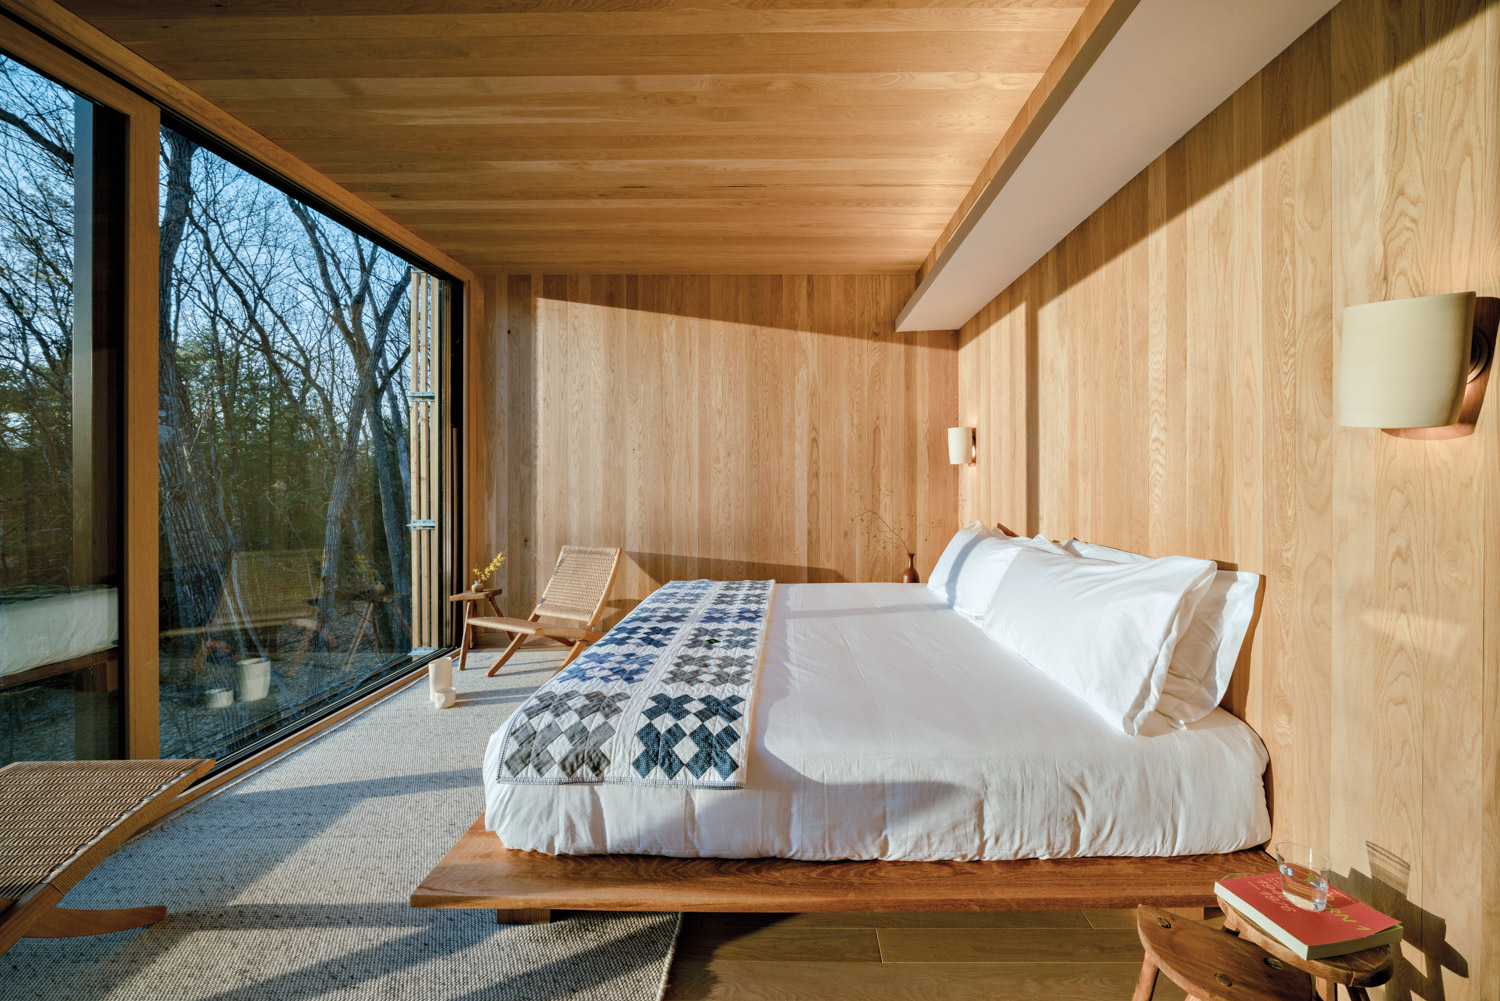 White bed in wood-clad cabin with a large glass window